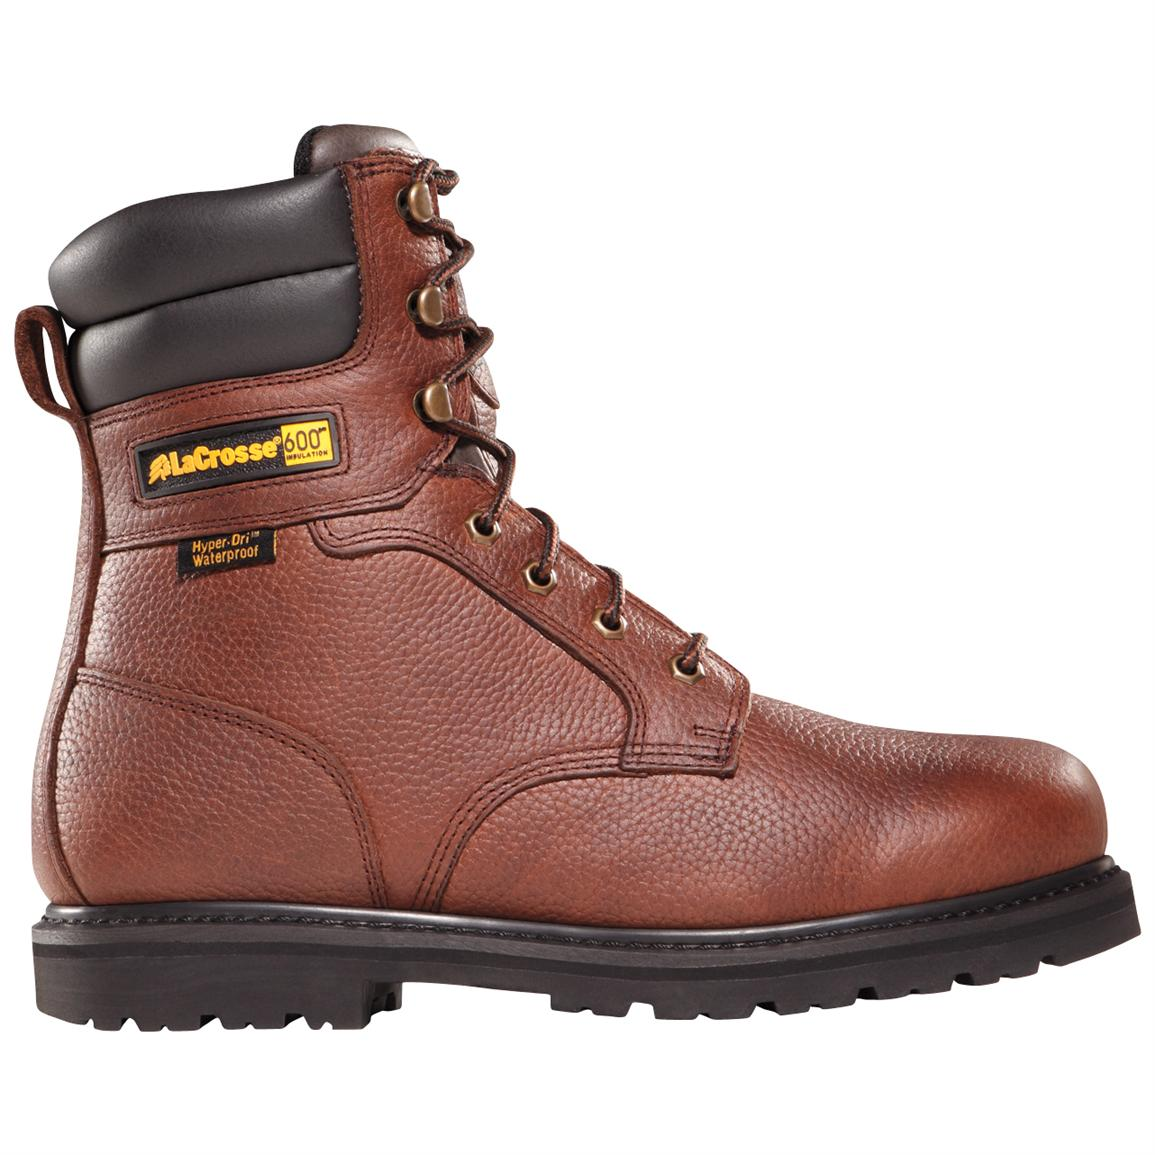 Men's LaCrosse® Foreman™ HD™ 8 inch 600-gram Thinsulate™ Ultra Insulation Boots